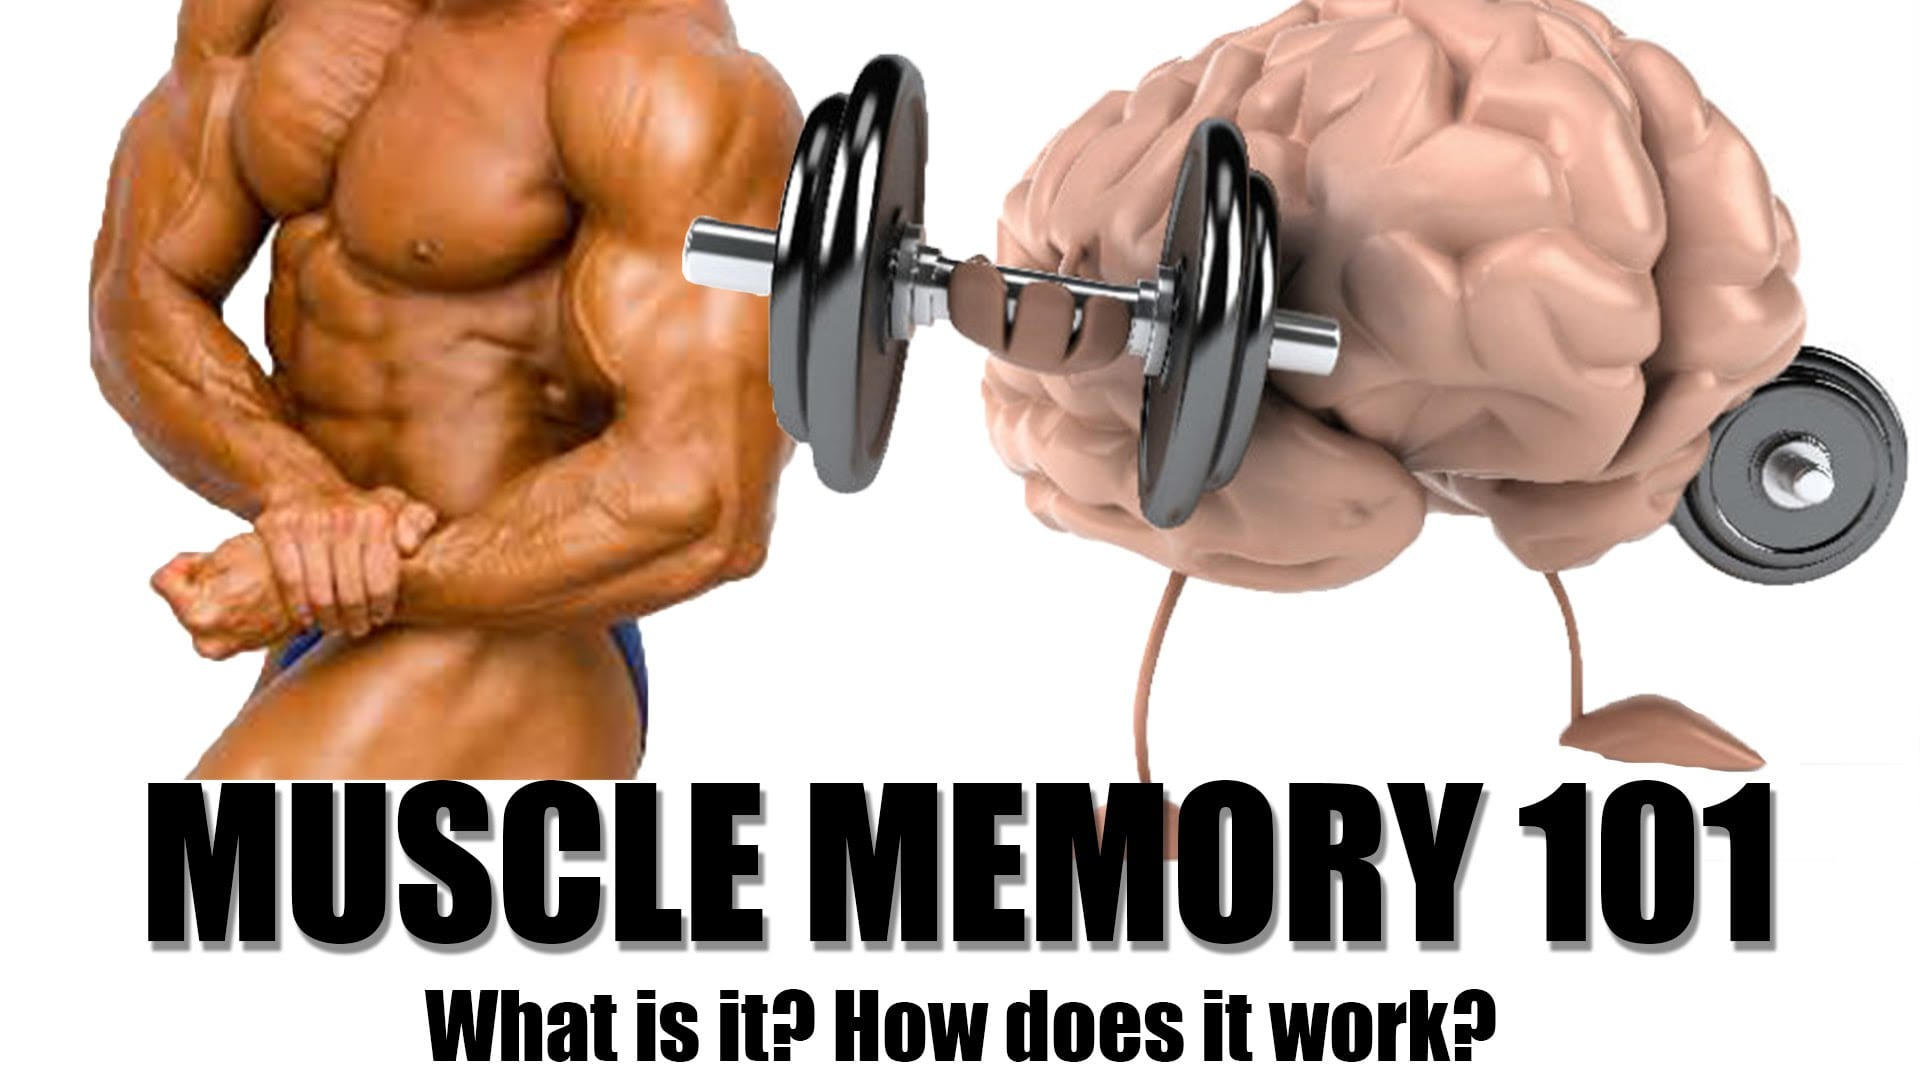 What is muscle memory